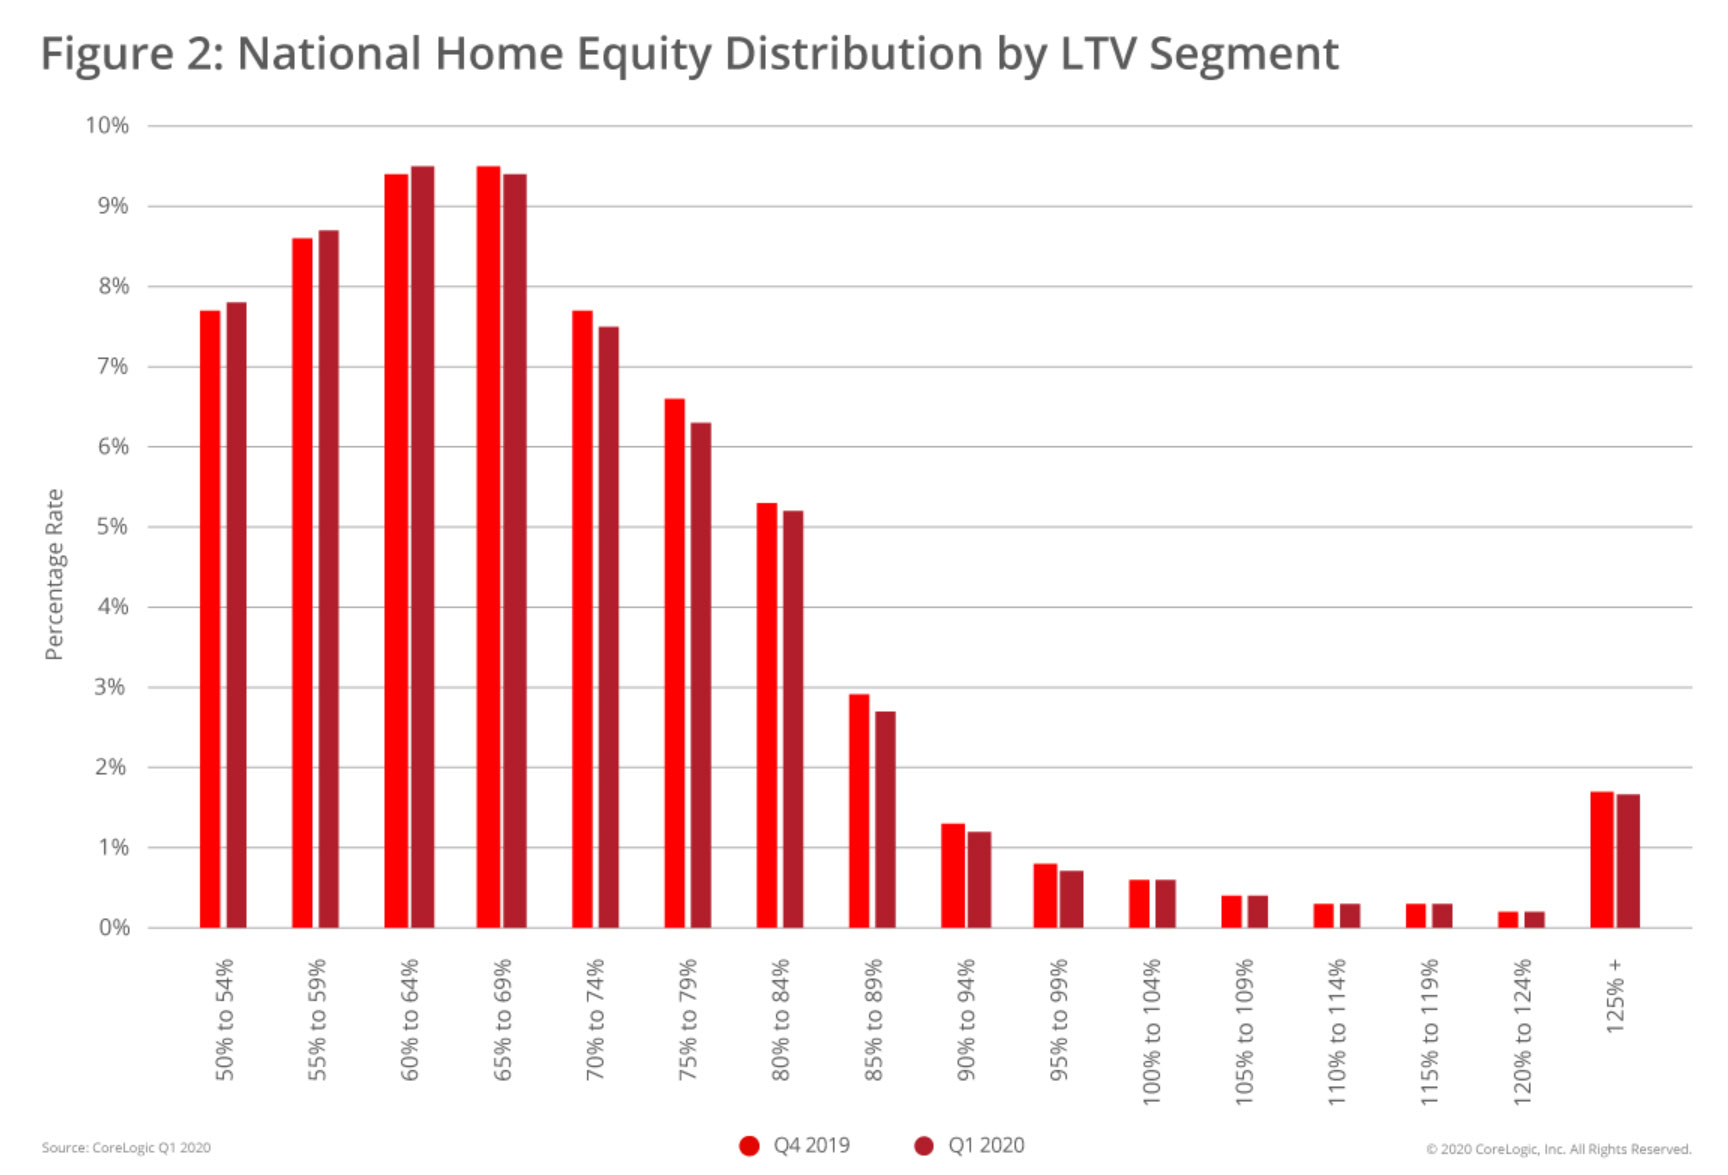 National-Home-Equity-Distribution-by-LTV-Segment-Q1-2020.jpg